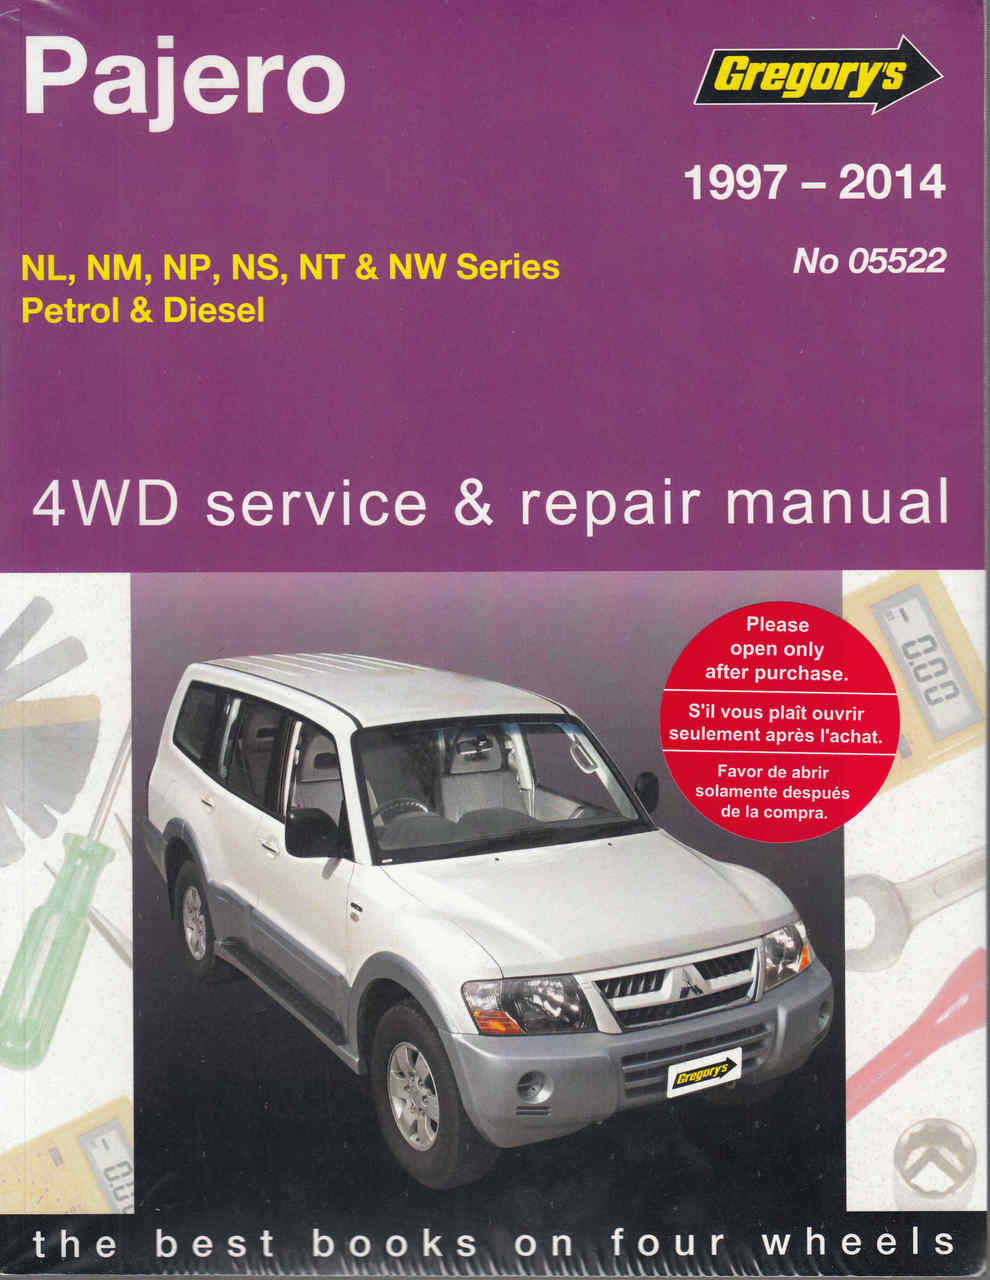 Mitsubishi Pajero Nl Nm Np Ns Nt 1997 2010 Workshop Manual 1983 Mighty Max Parts Diagram Nw Series Petrol